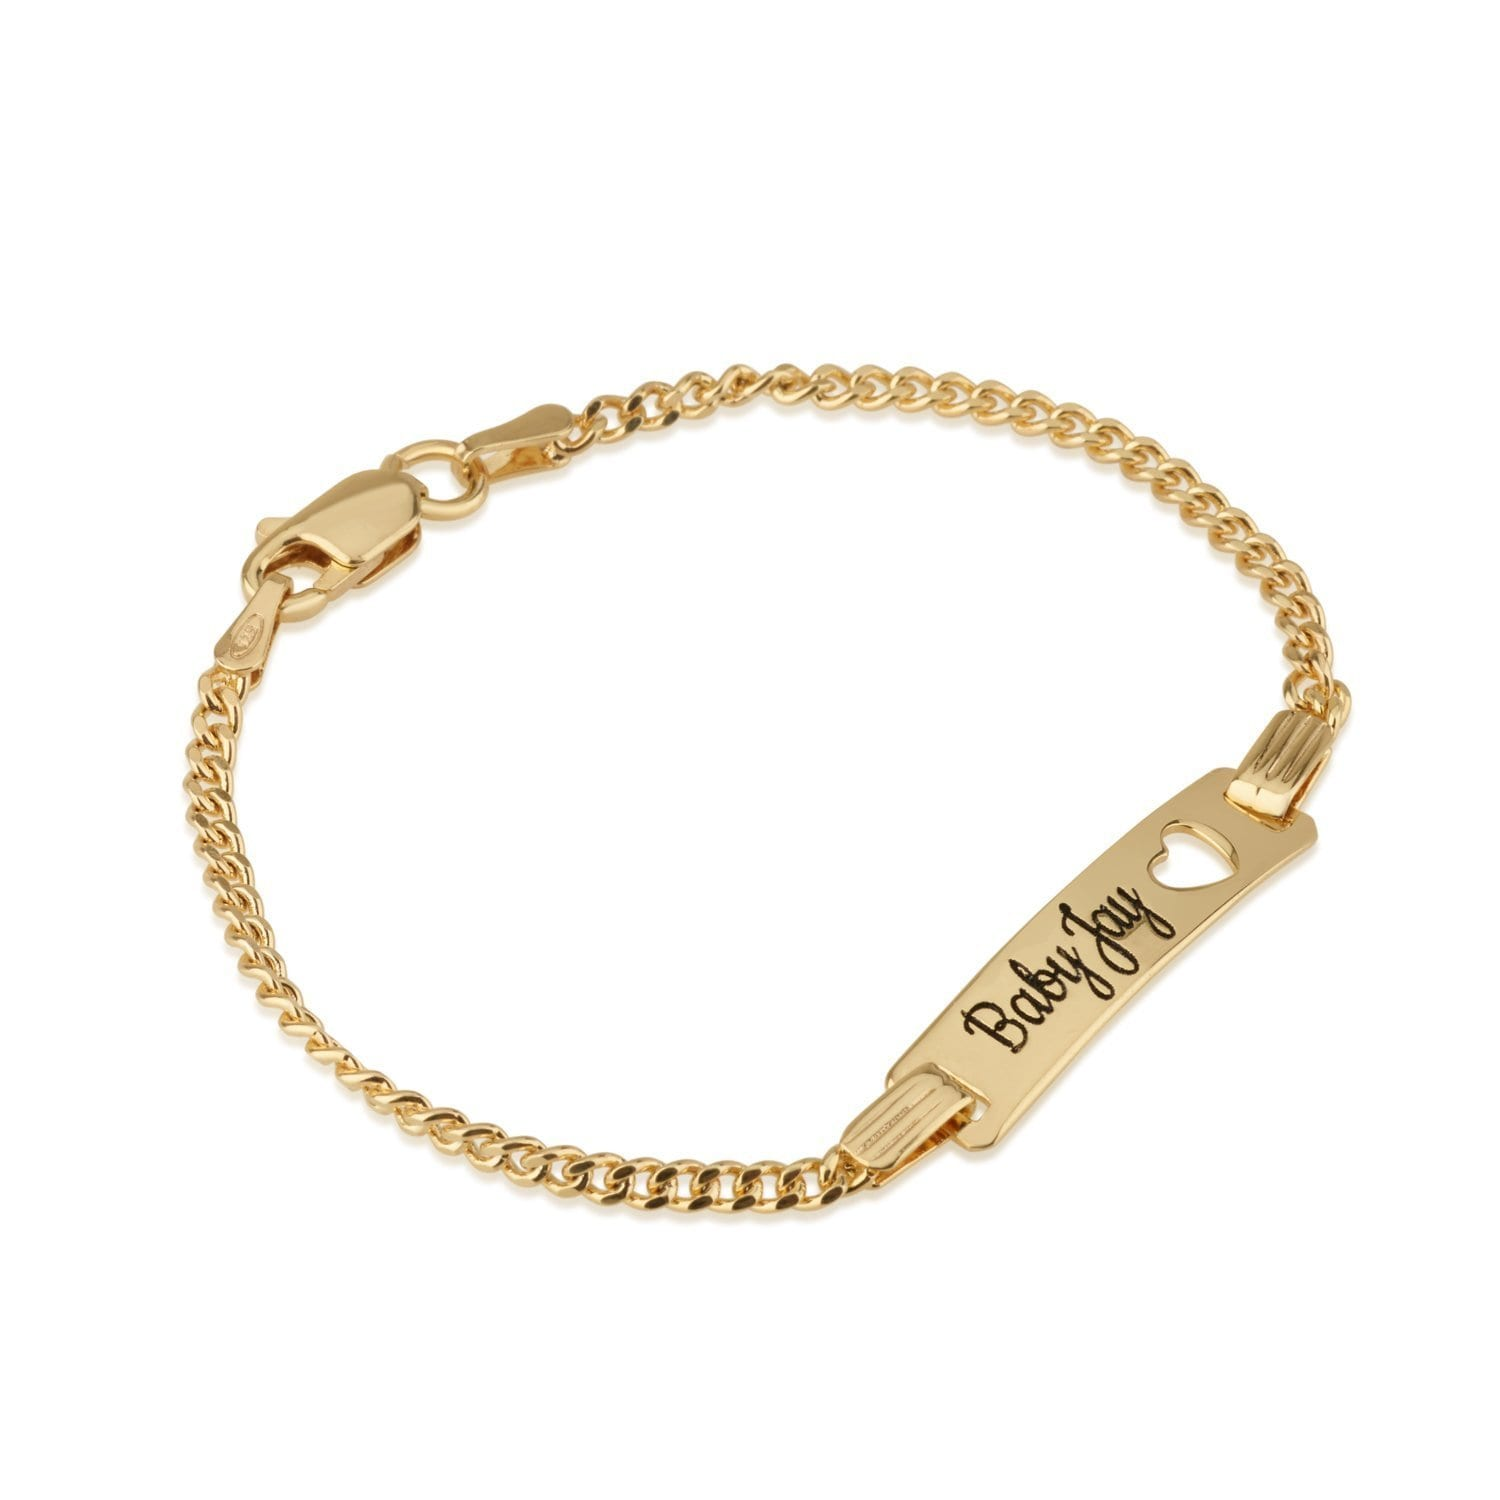 Engraved Baby Name Bracelet - Beleco Jewelry